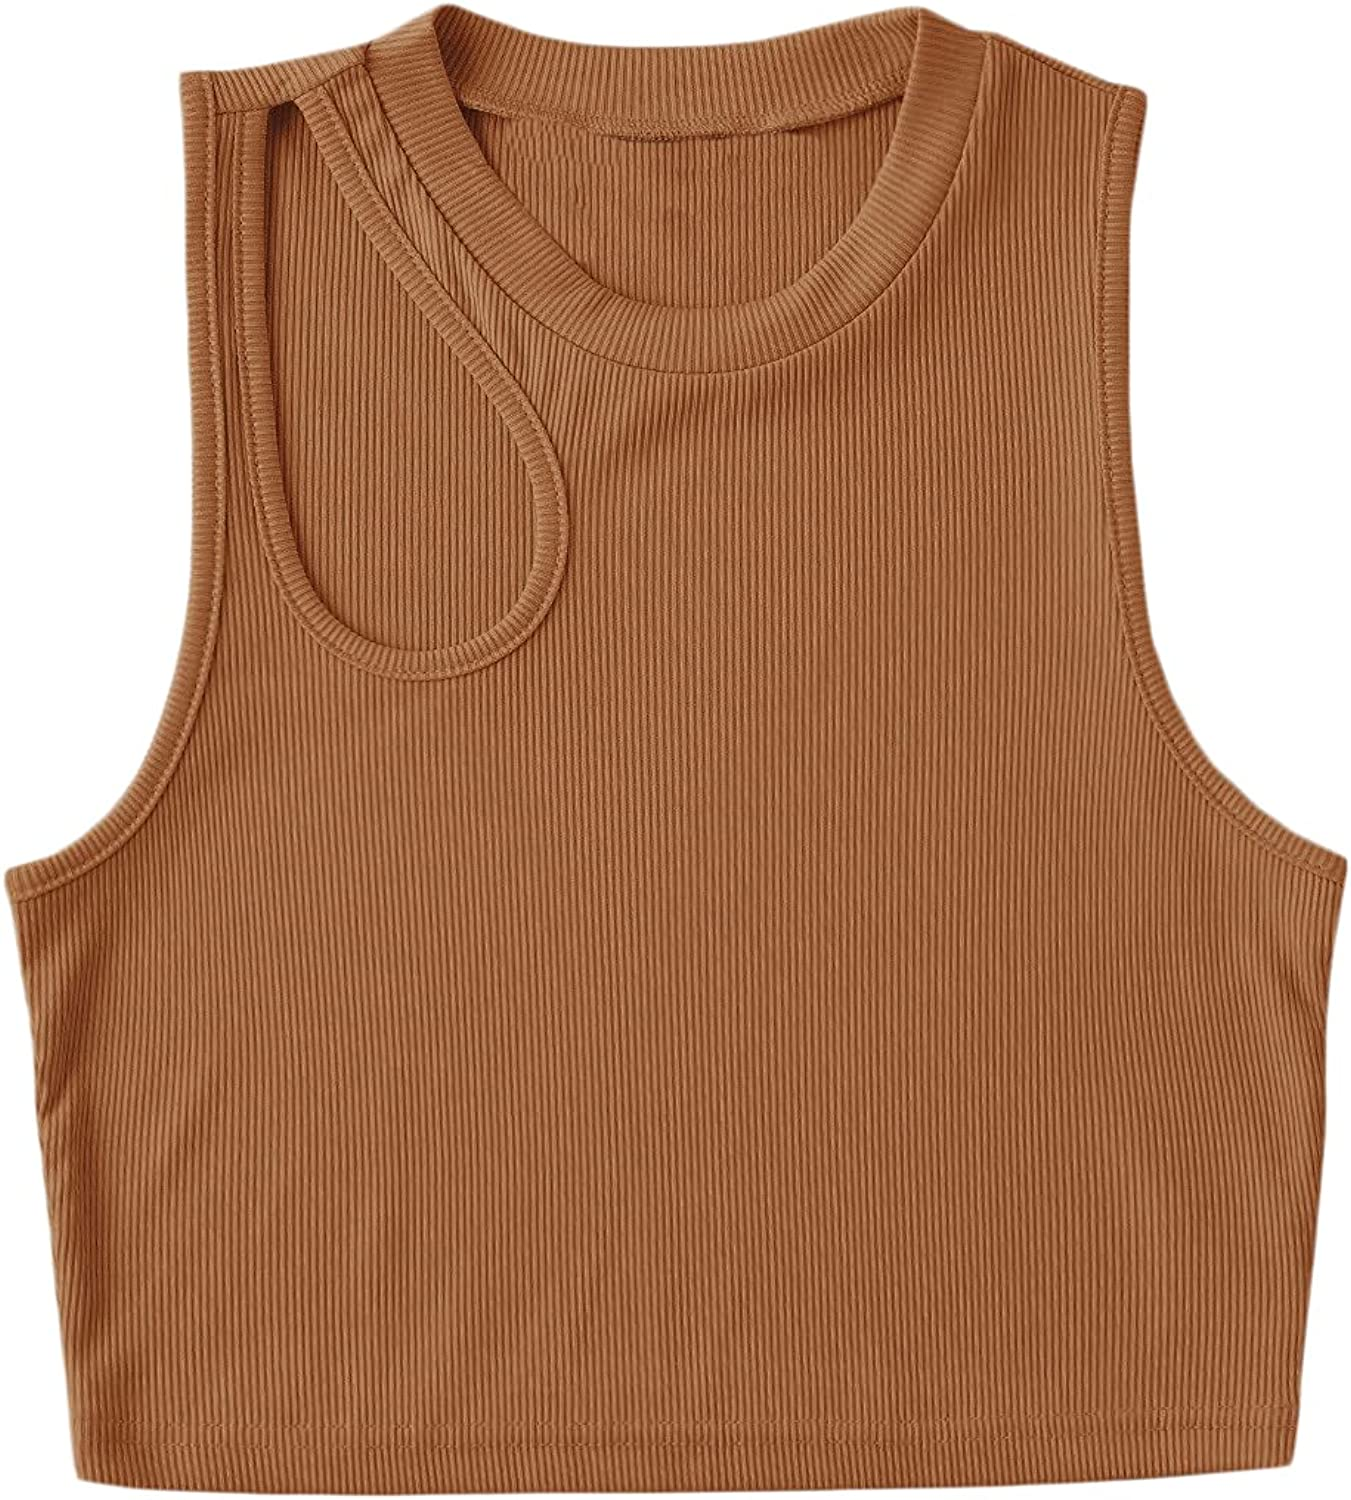 Milumia Women's Sexy Sleeveless Crop Top Summer Slim Cut Out Ribbed Tank Top